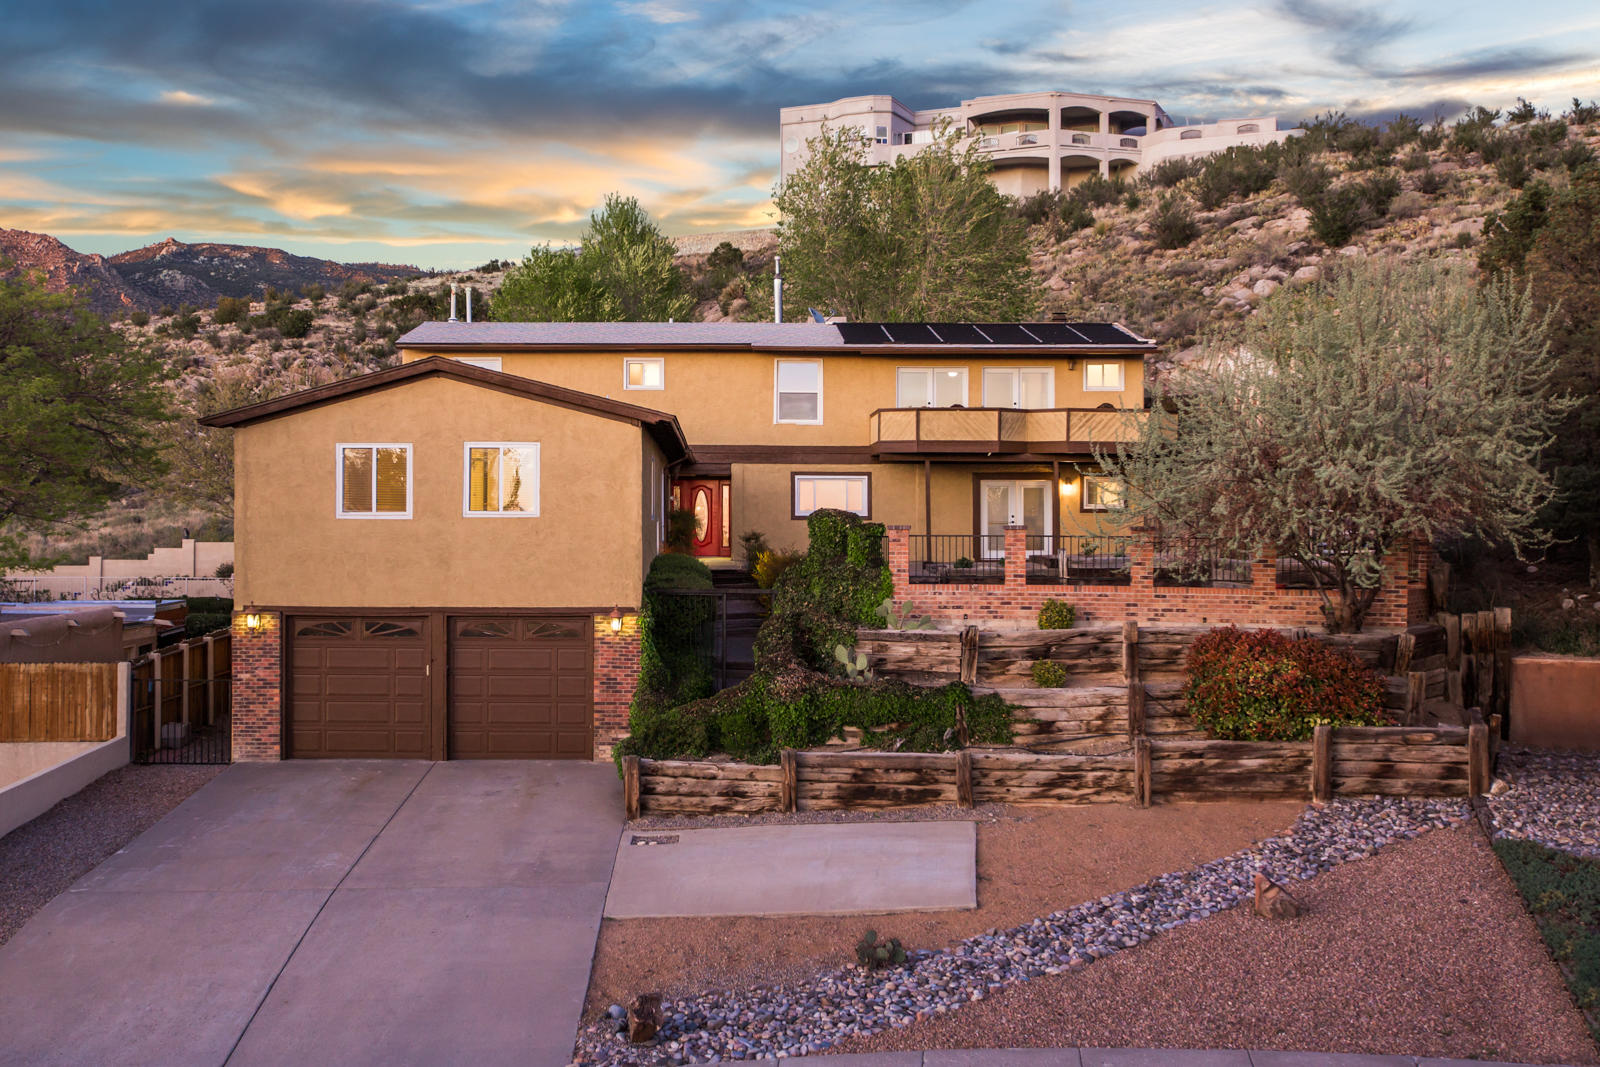 Sitting at the base of the foothills on 1/3 of an acre, this spacious 5 bedroom home offers breathtaking views of the city and mountains. The front of the home has a security gate that leads up a beautiful courtyard pool area. Inside, the home features a large open kitchen with granite counter tops, multiple living areas, and a private two bedroom suite above the garage. Solar panels are owned and are used to heat the pool. Roof was replaced in 2013 and a home inspection was performed in 2018 with more home information.